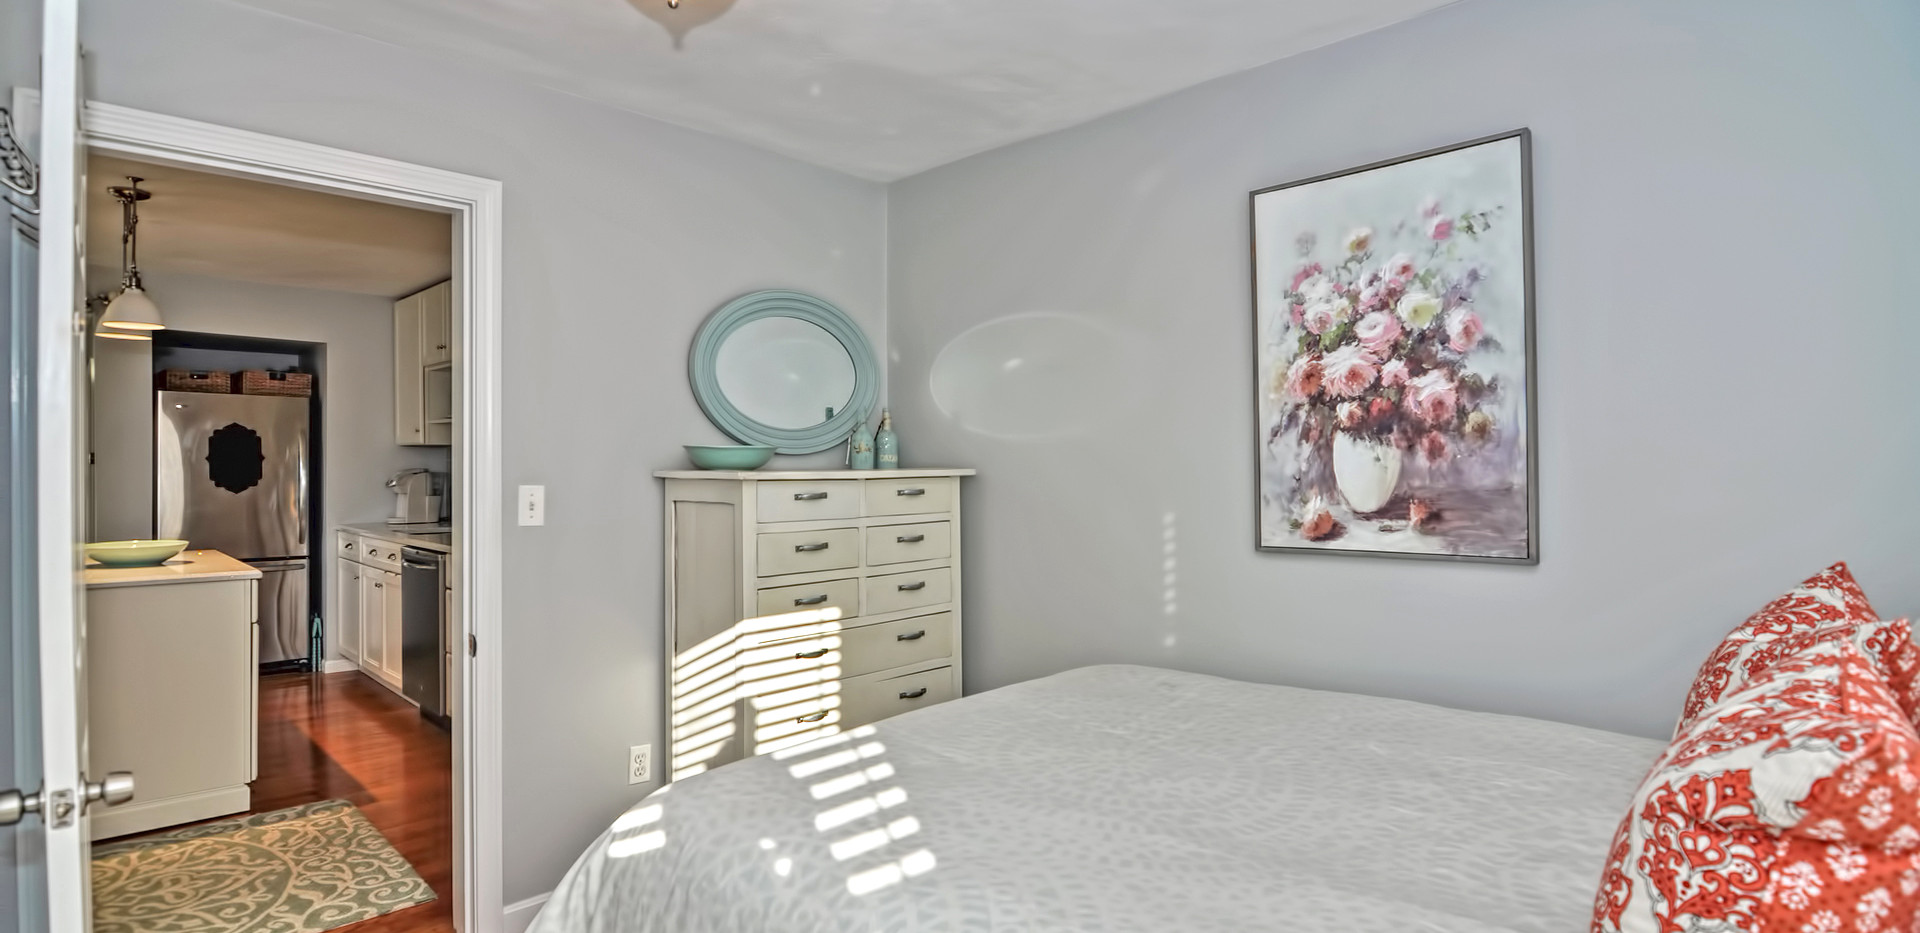 93 Taylor Street - Unit 2 - Waltham MA - Back Bedroom - The Madden Team at Berkshire Hathaway Commonwealth Real Estate - Condo for Sale